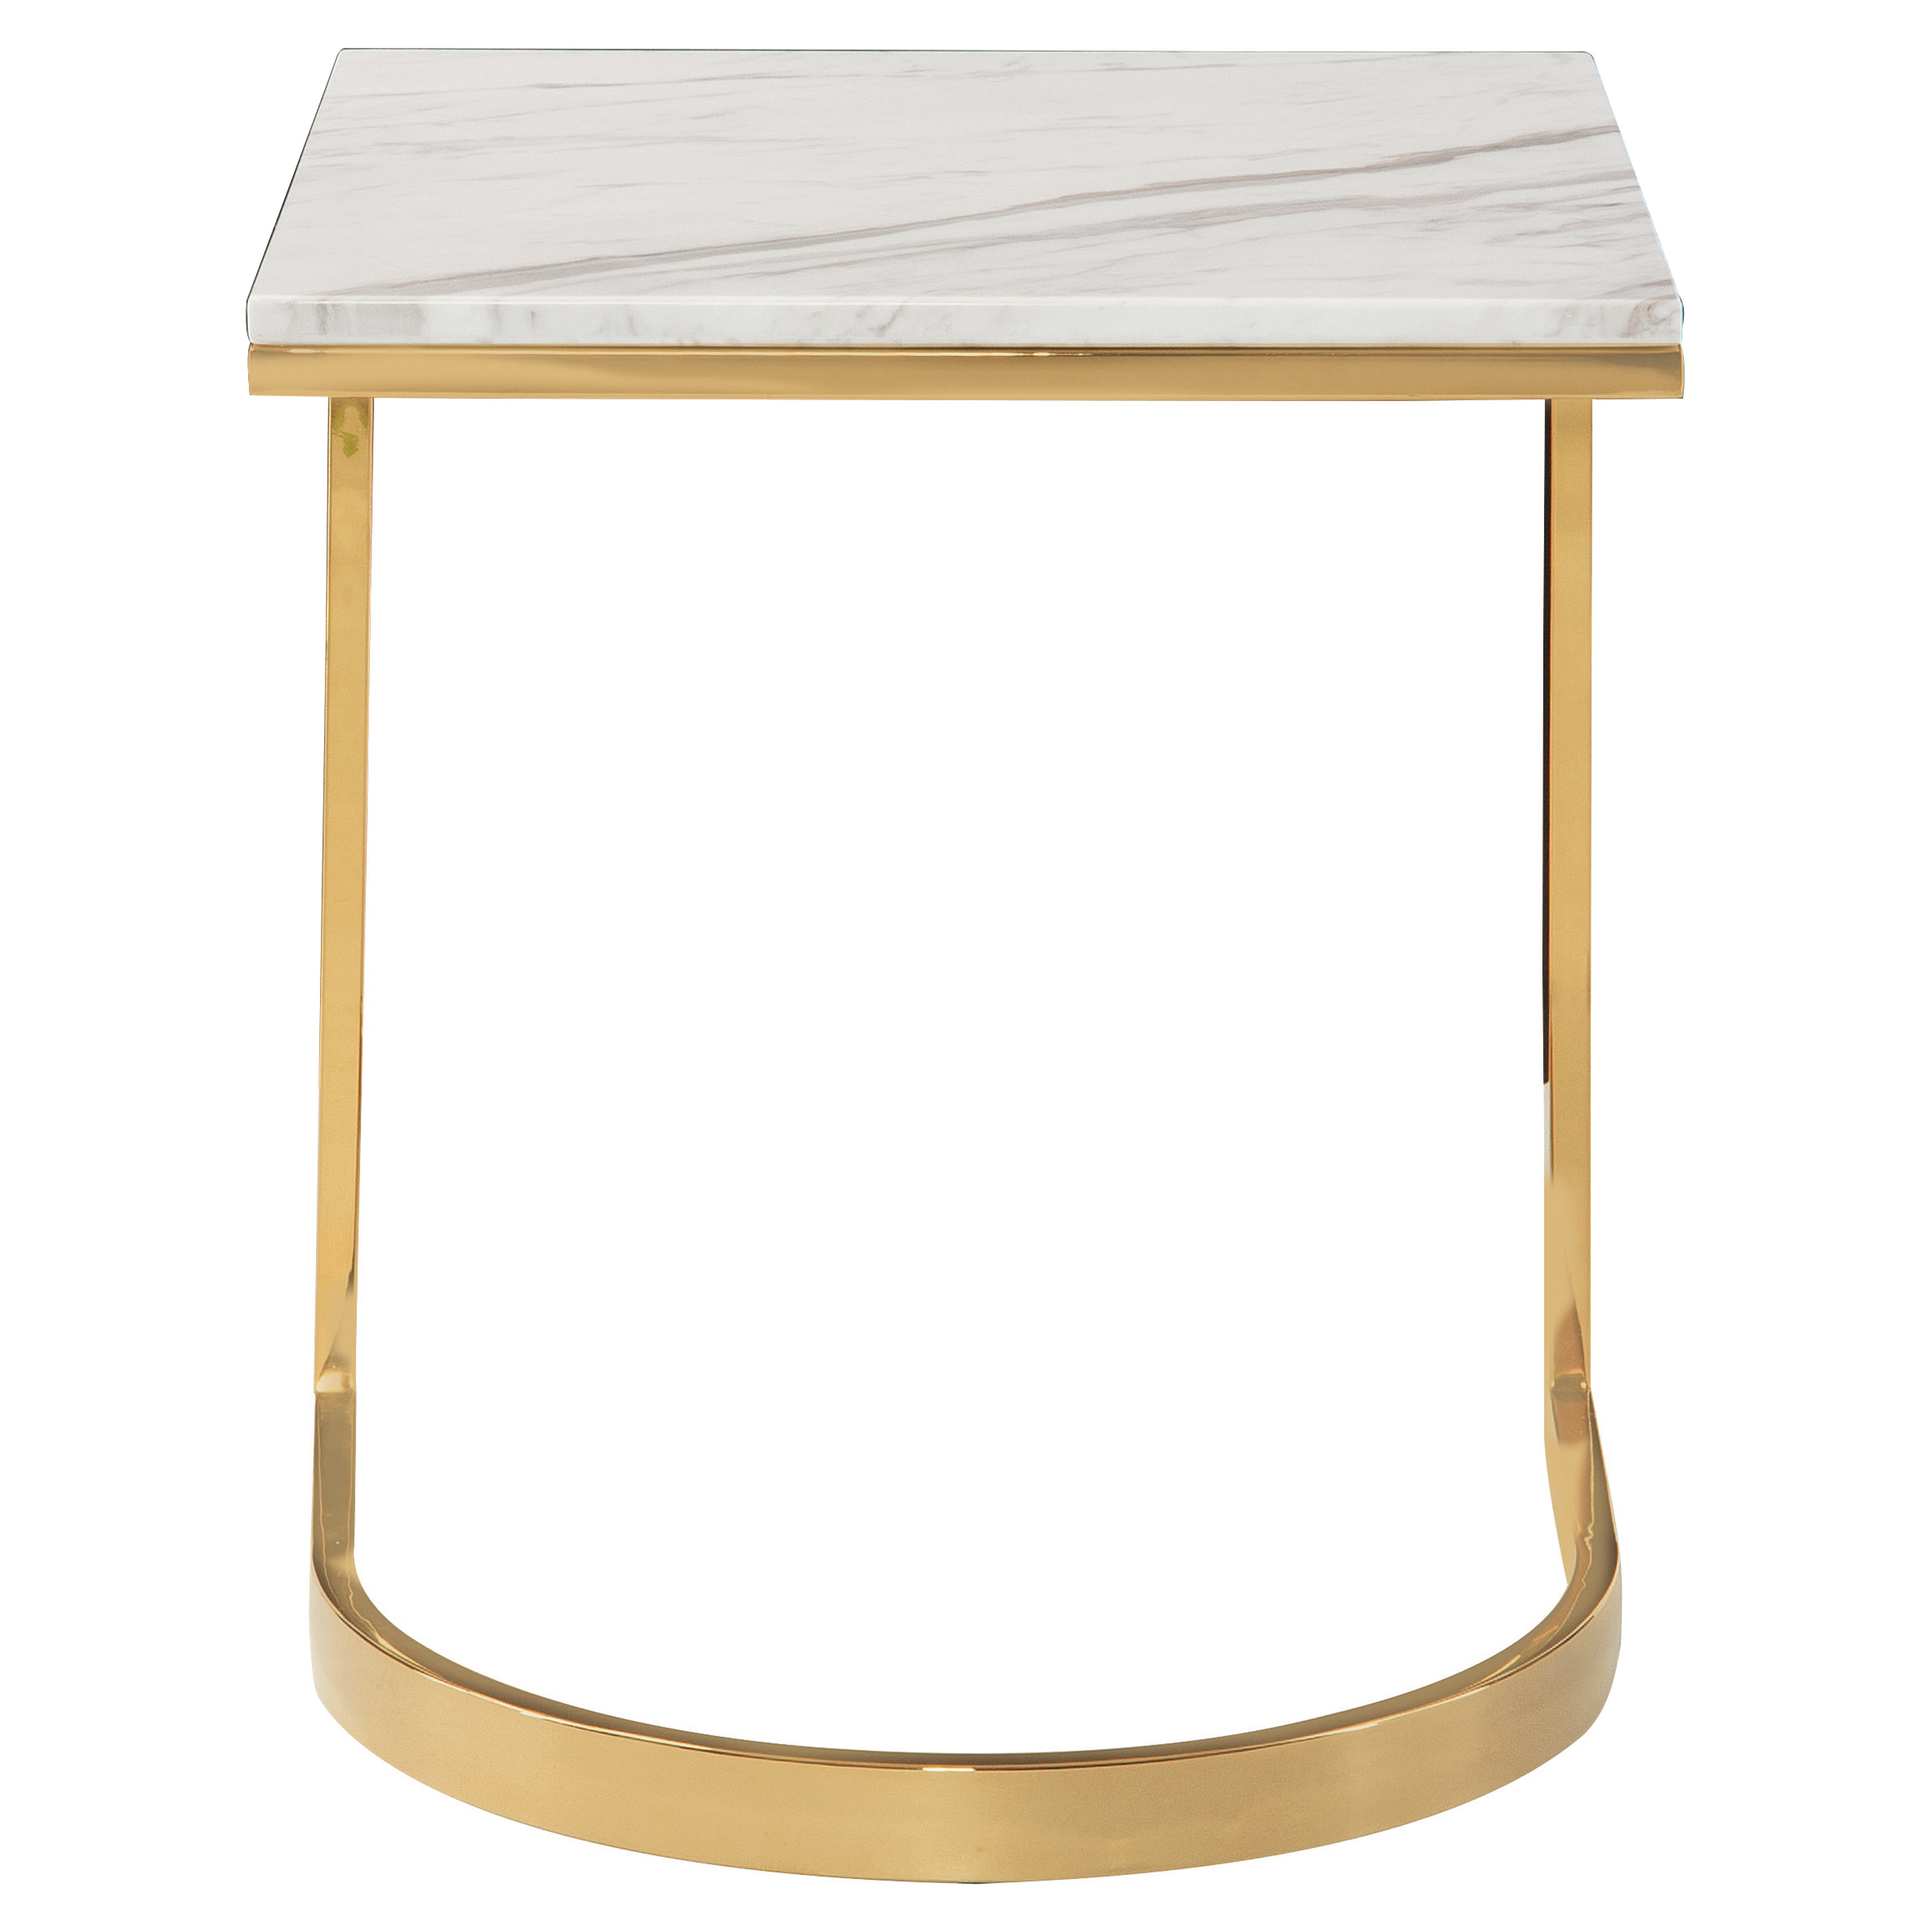 Nata Hollywood White Marble Brass Horse Shoe End Table